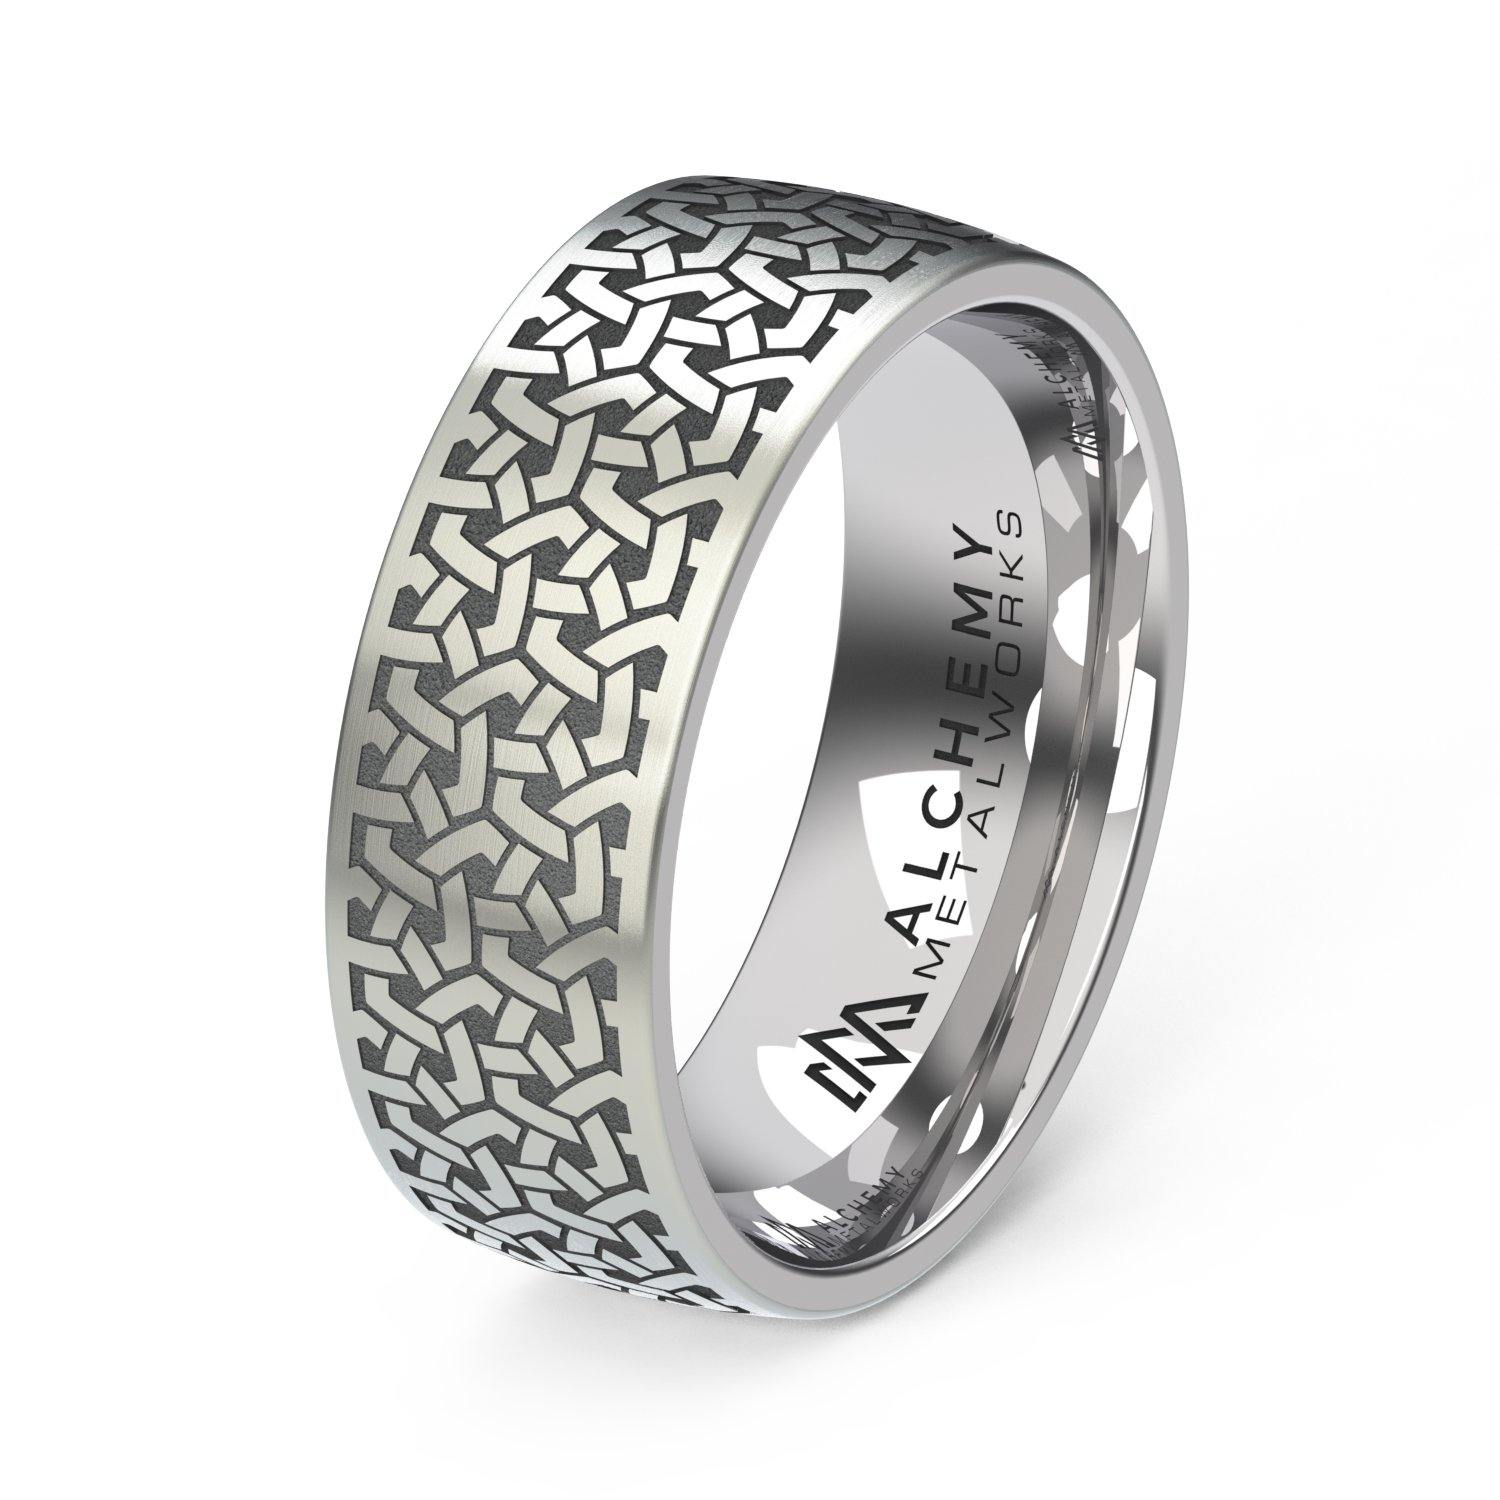 Laser Engraved Titanium Ring - Chain Mail